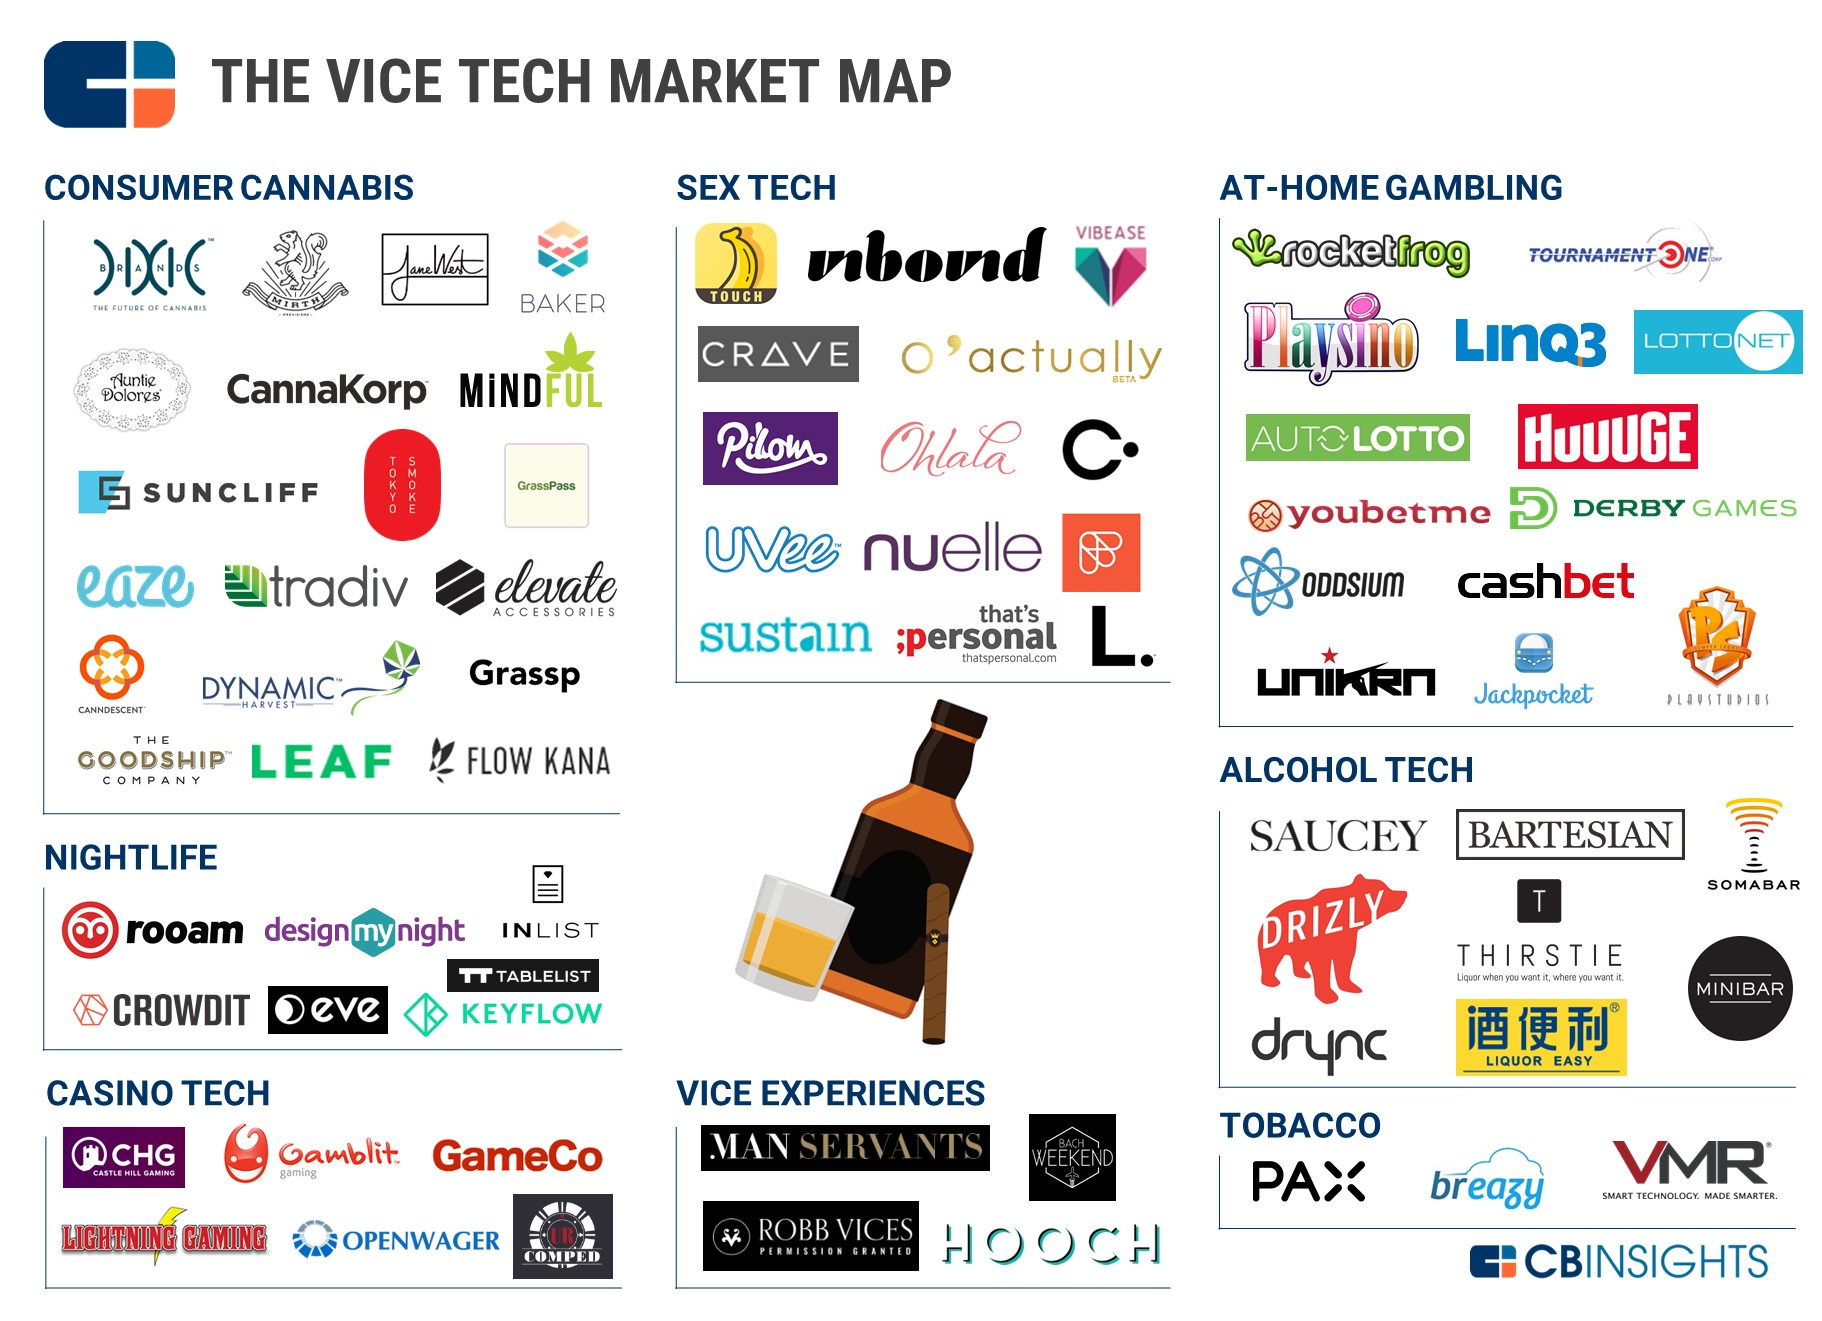 2.8 Vice Tech Market Map